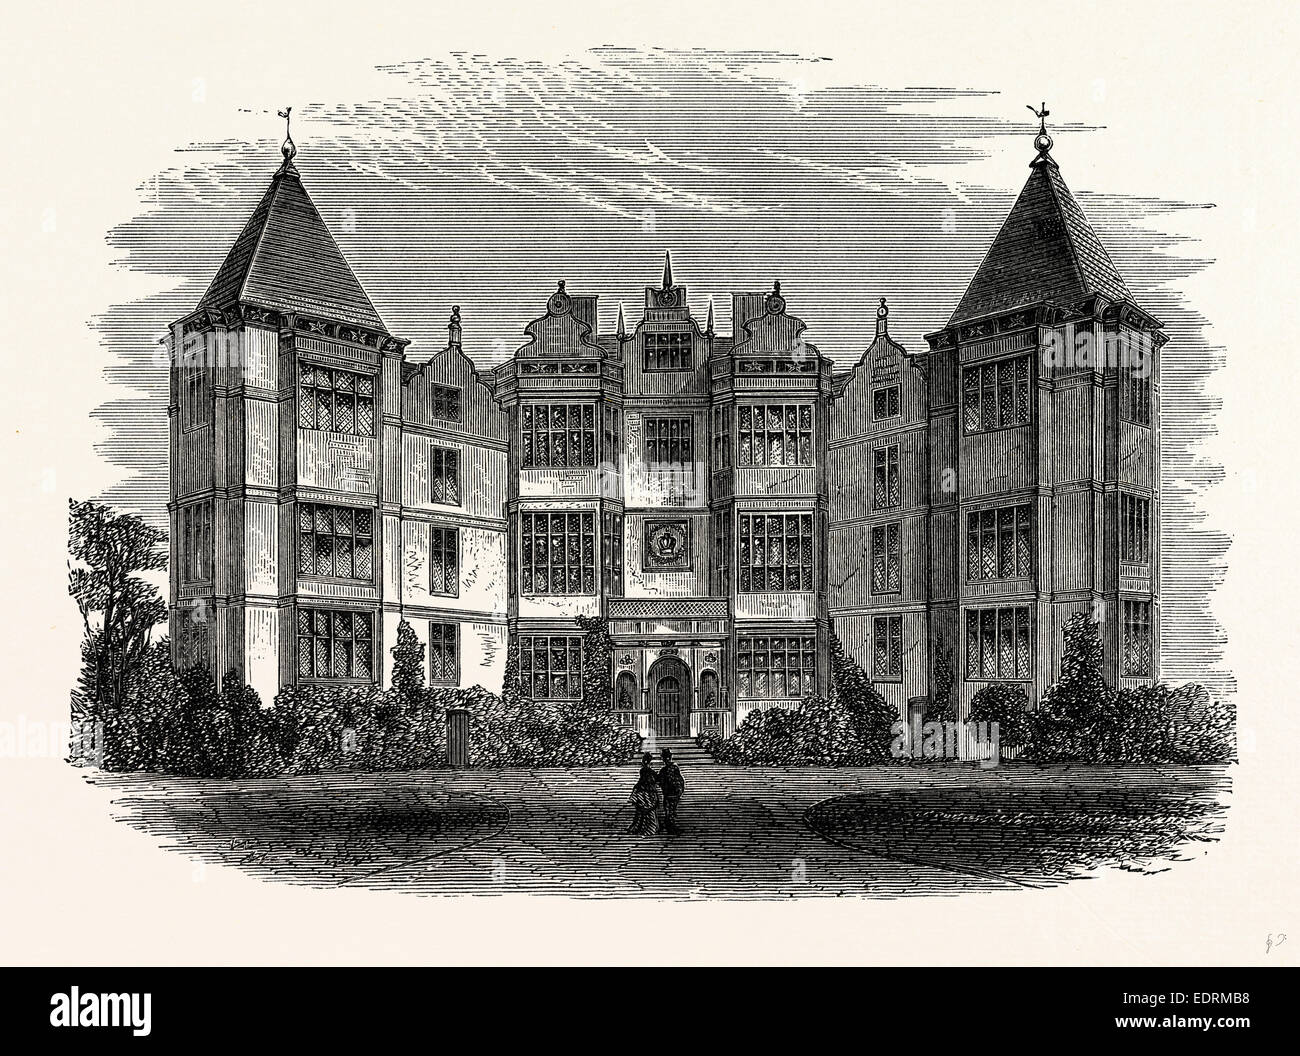 The Principal Front, Westwood Park, UK, England, engraving 1870s, Britain - Stock Image